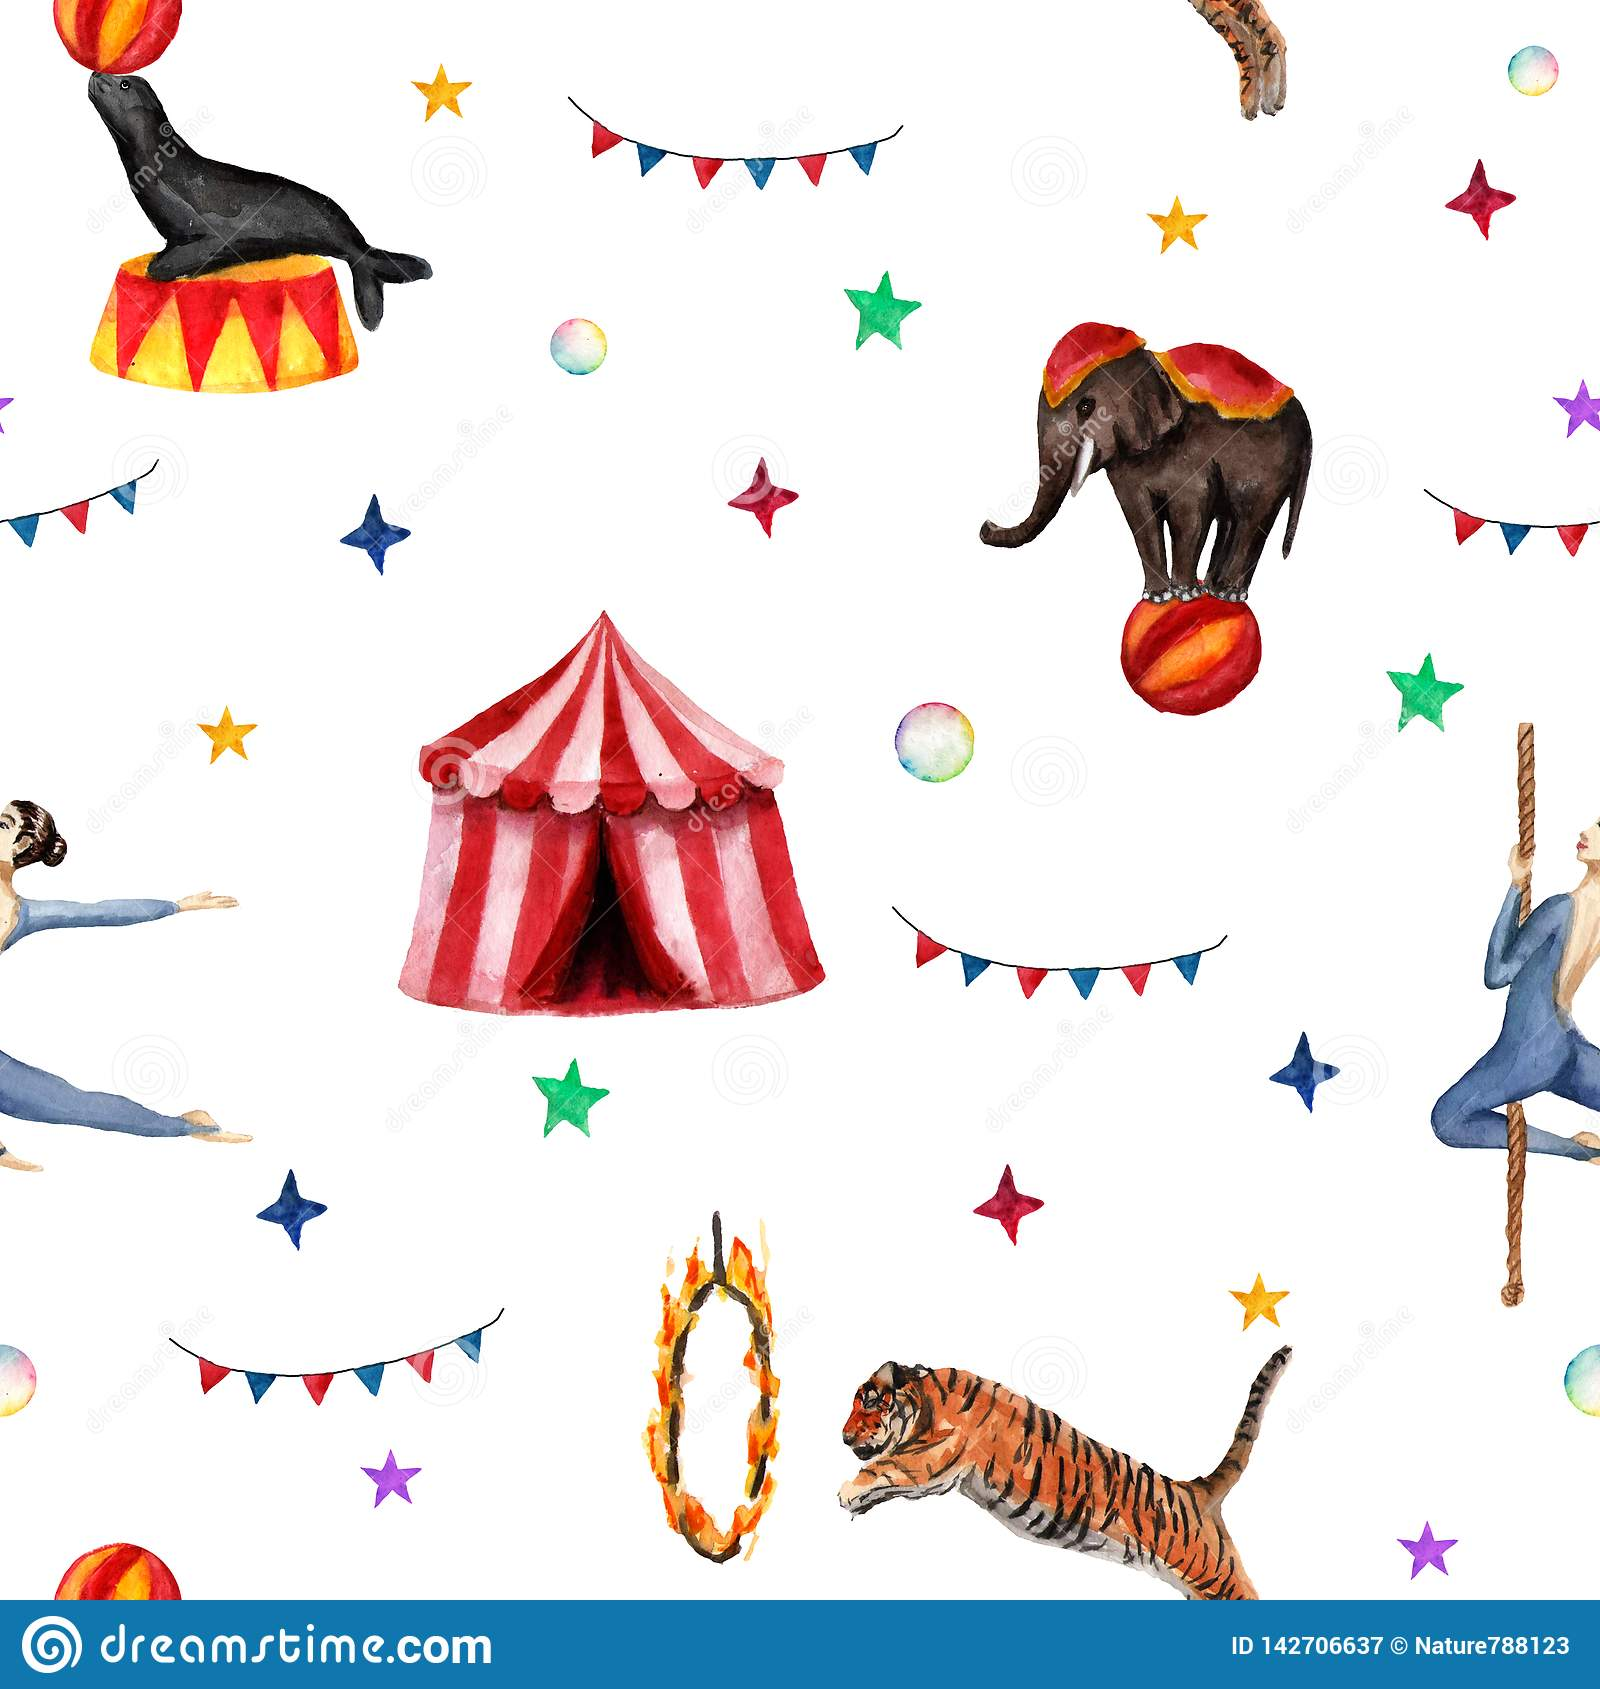 Circus pattern, elephant, seal, tiger, tent, flags, soap bubbles and acrobat. Watercolor illustration on white